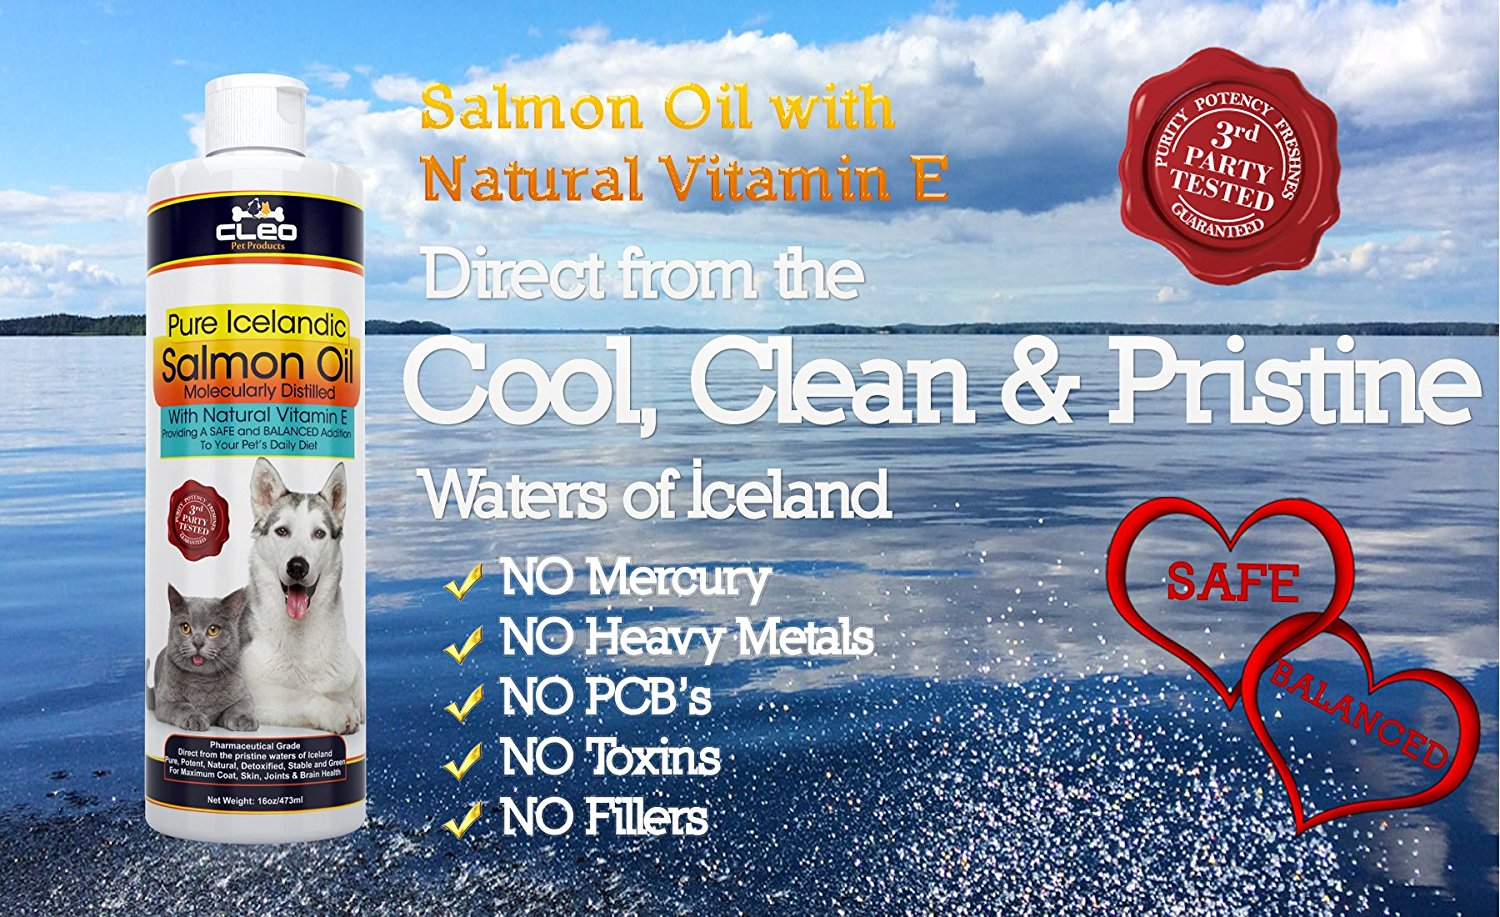 Benefits of salmon oil for pets